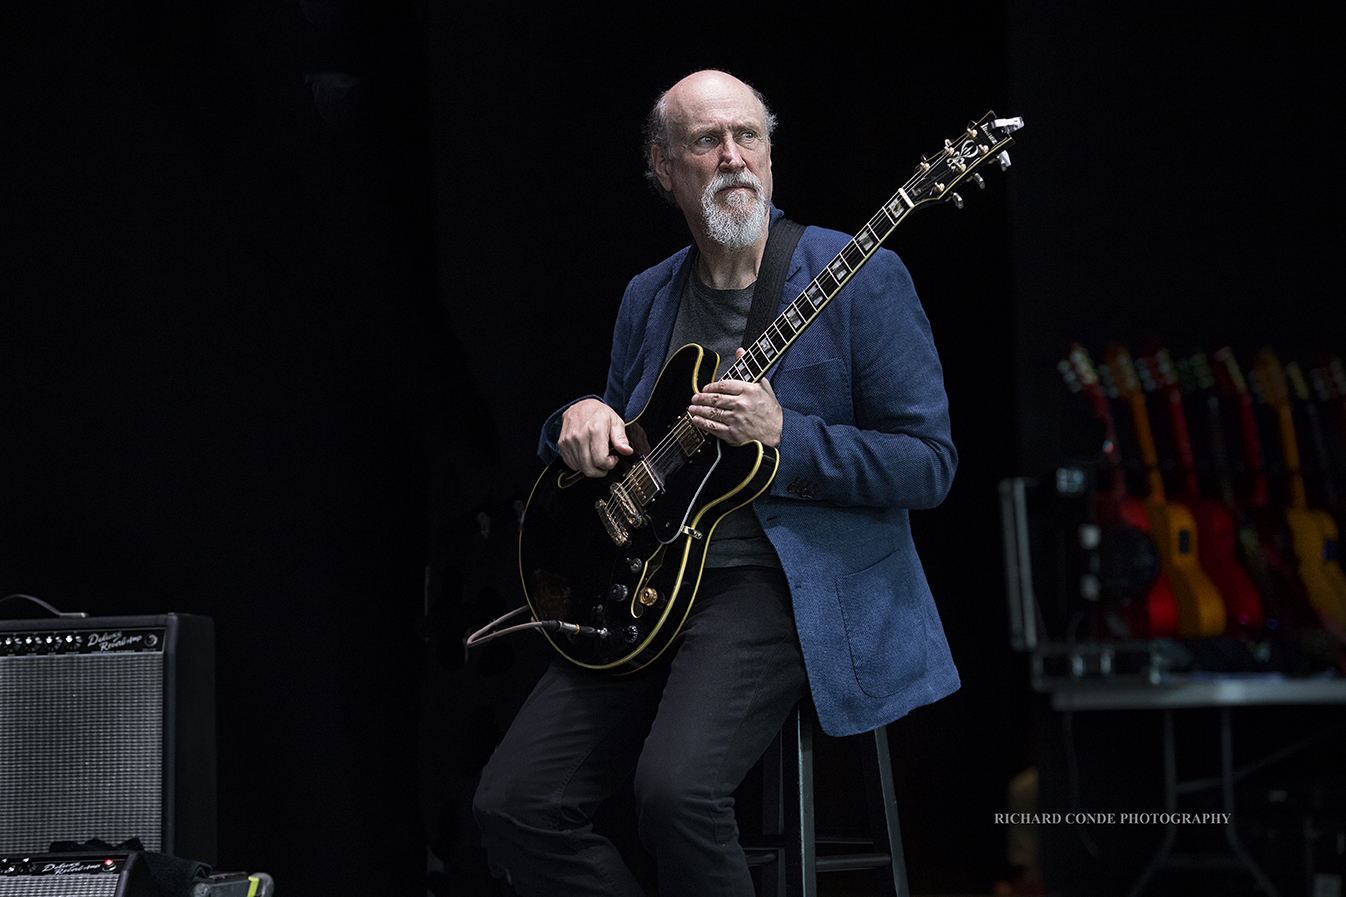 John Scofield at the Freihofer Saratoga Jazz Festival 2017